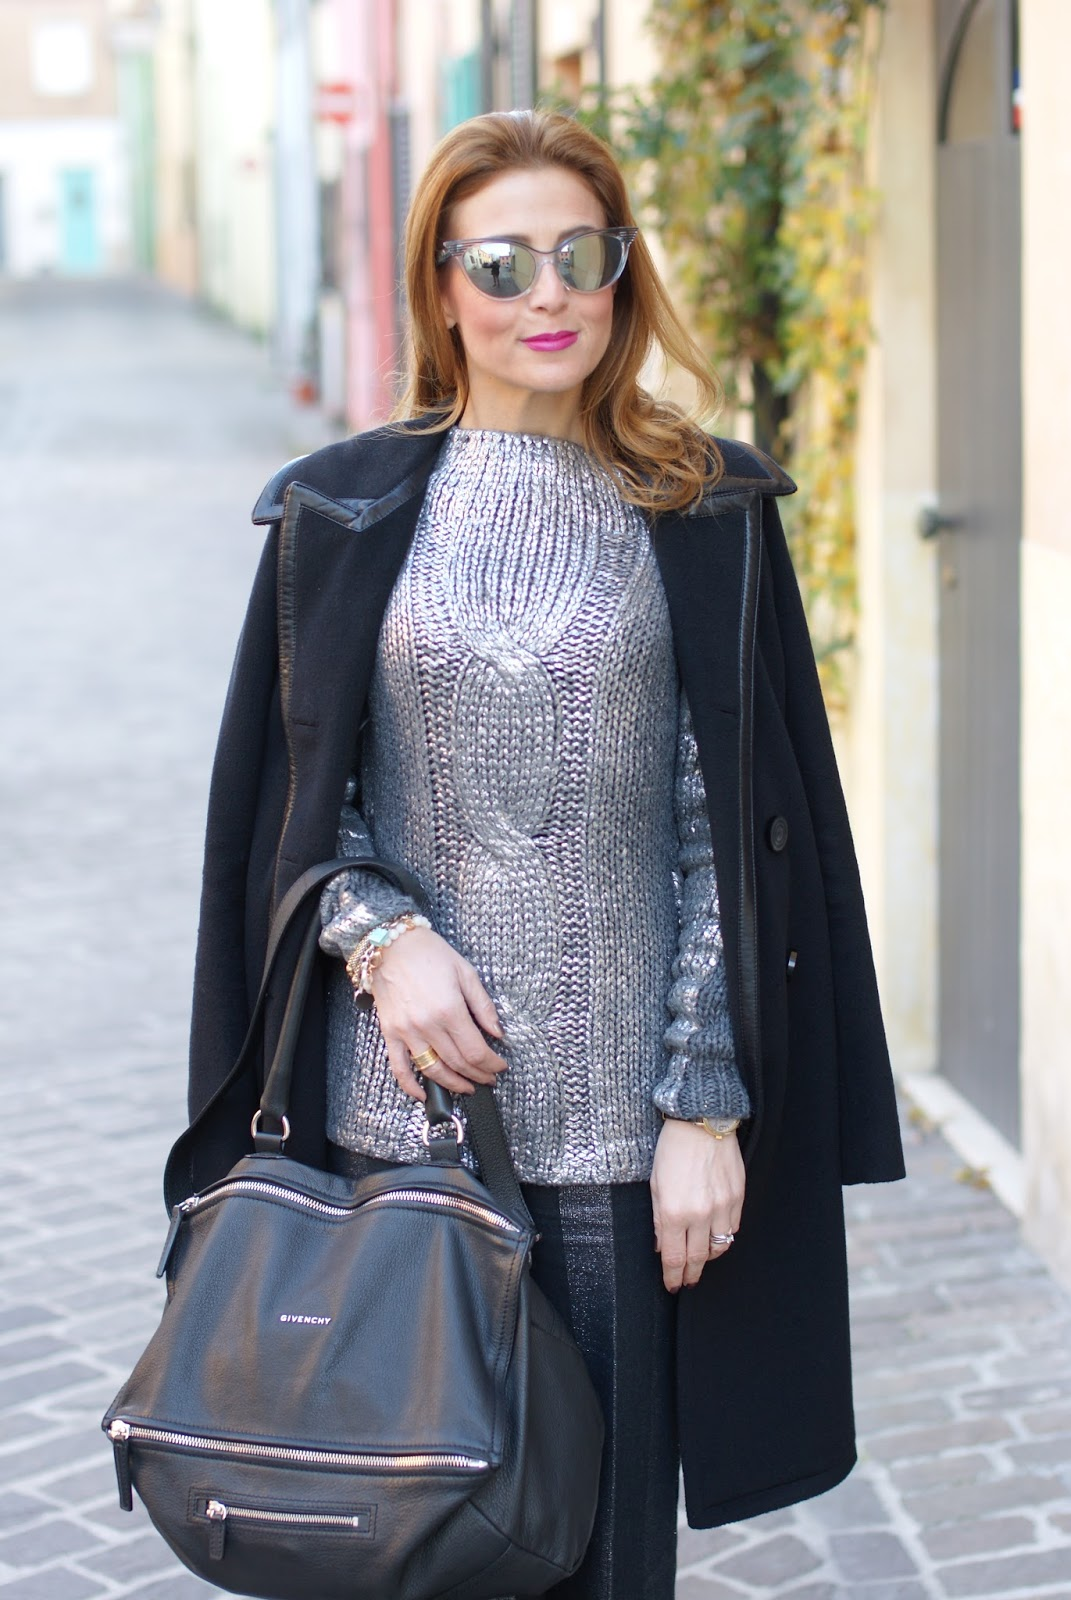 How to spice up a black outfit on Fashion and Cookies fashion blog, fashion blogger style